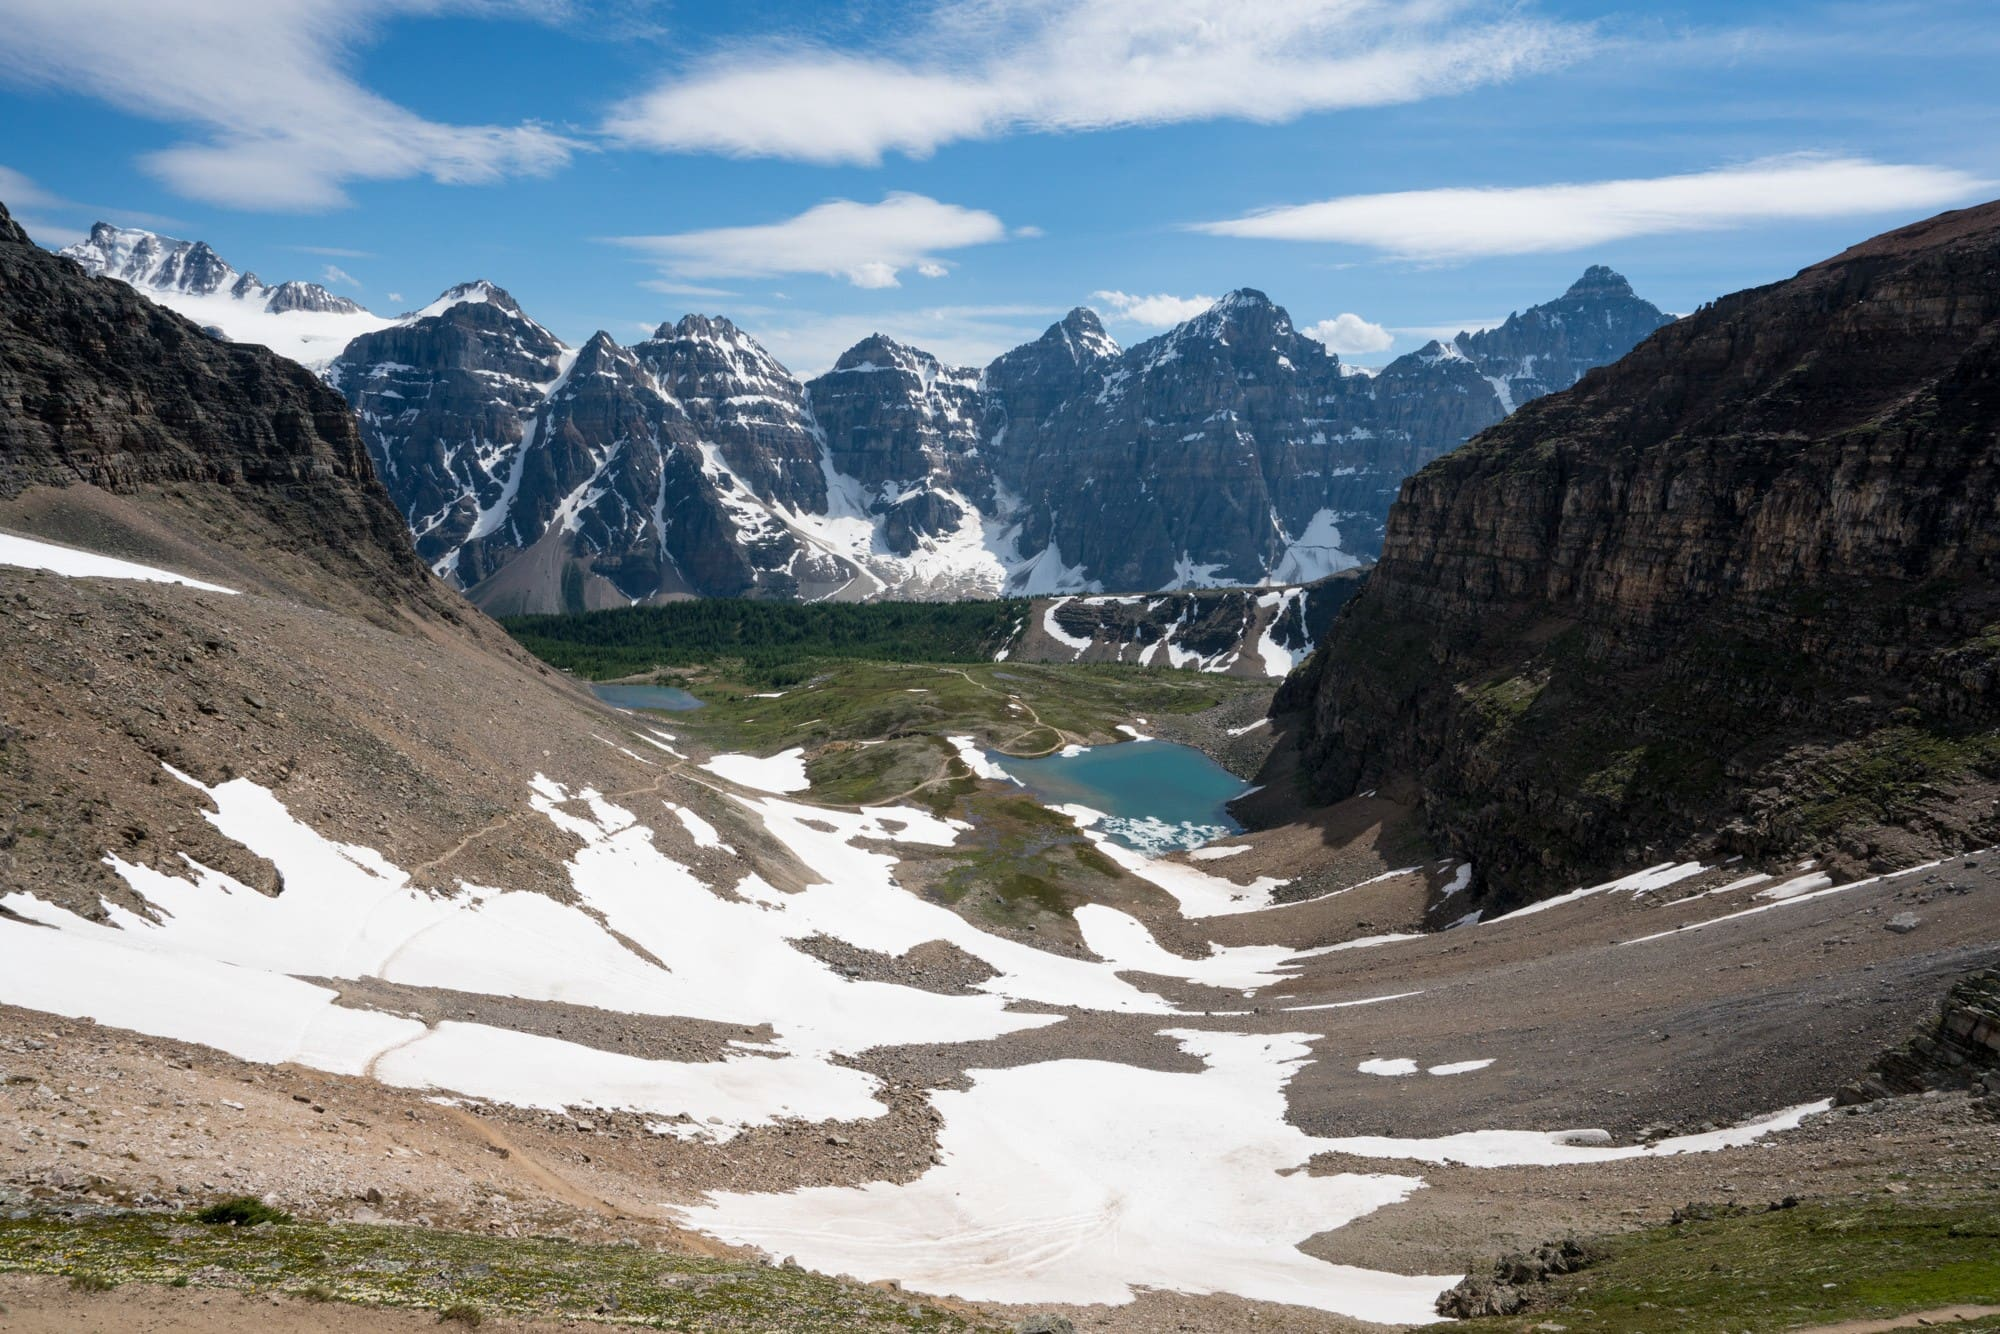 Sentinal Pass - Banff - A list of the most scenic hiking trails, bike paths, kayaking and all the best outdoor activities to do in Banff in the early summer.